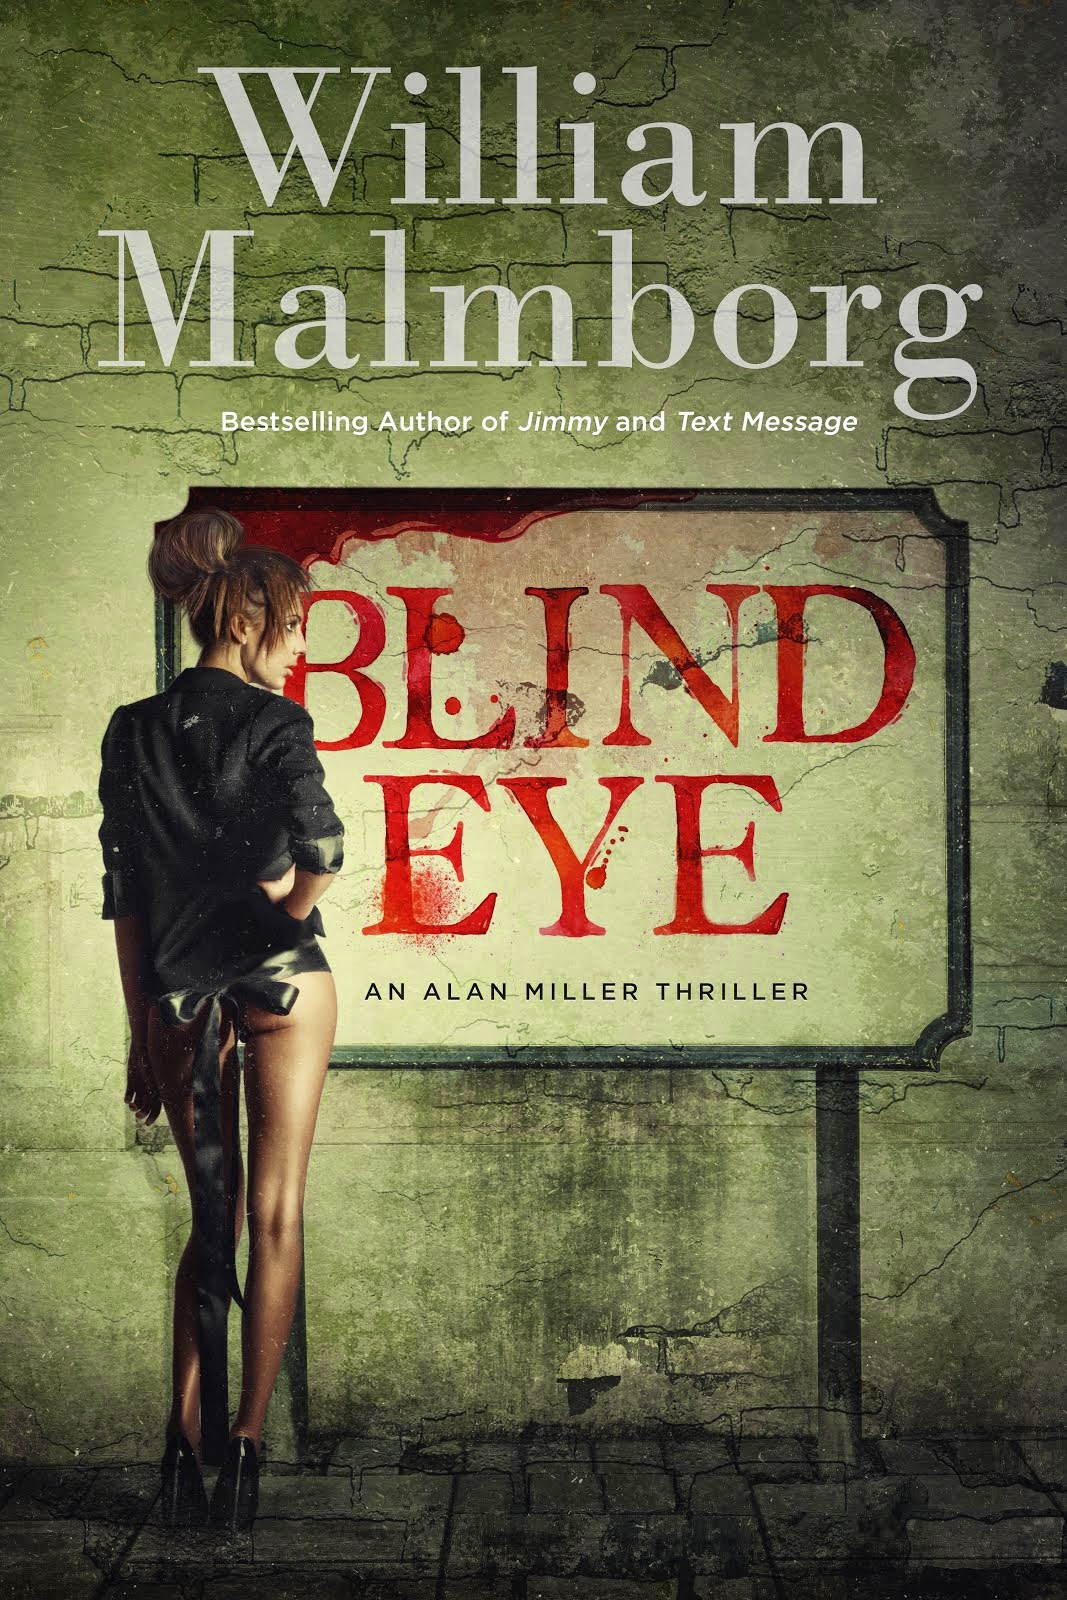 Coming Soon - Blind Eye